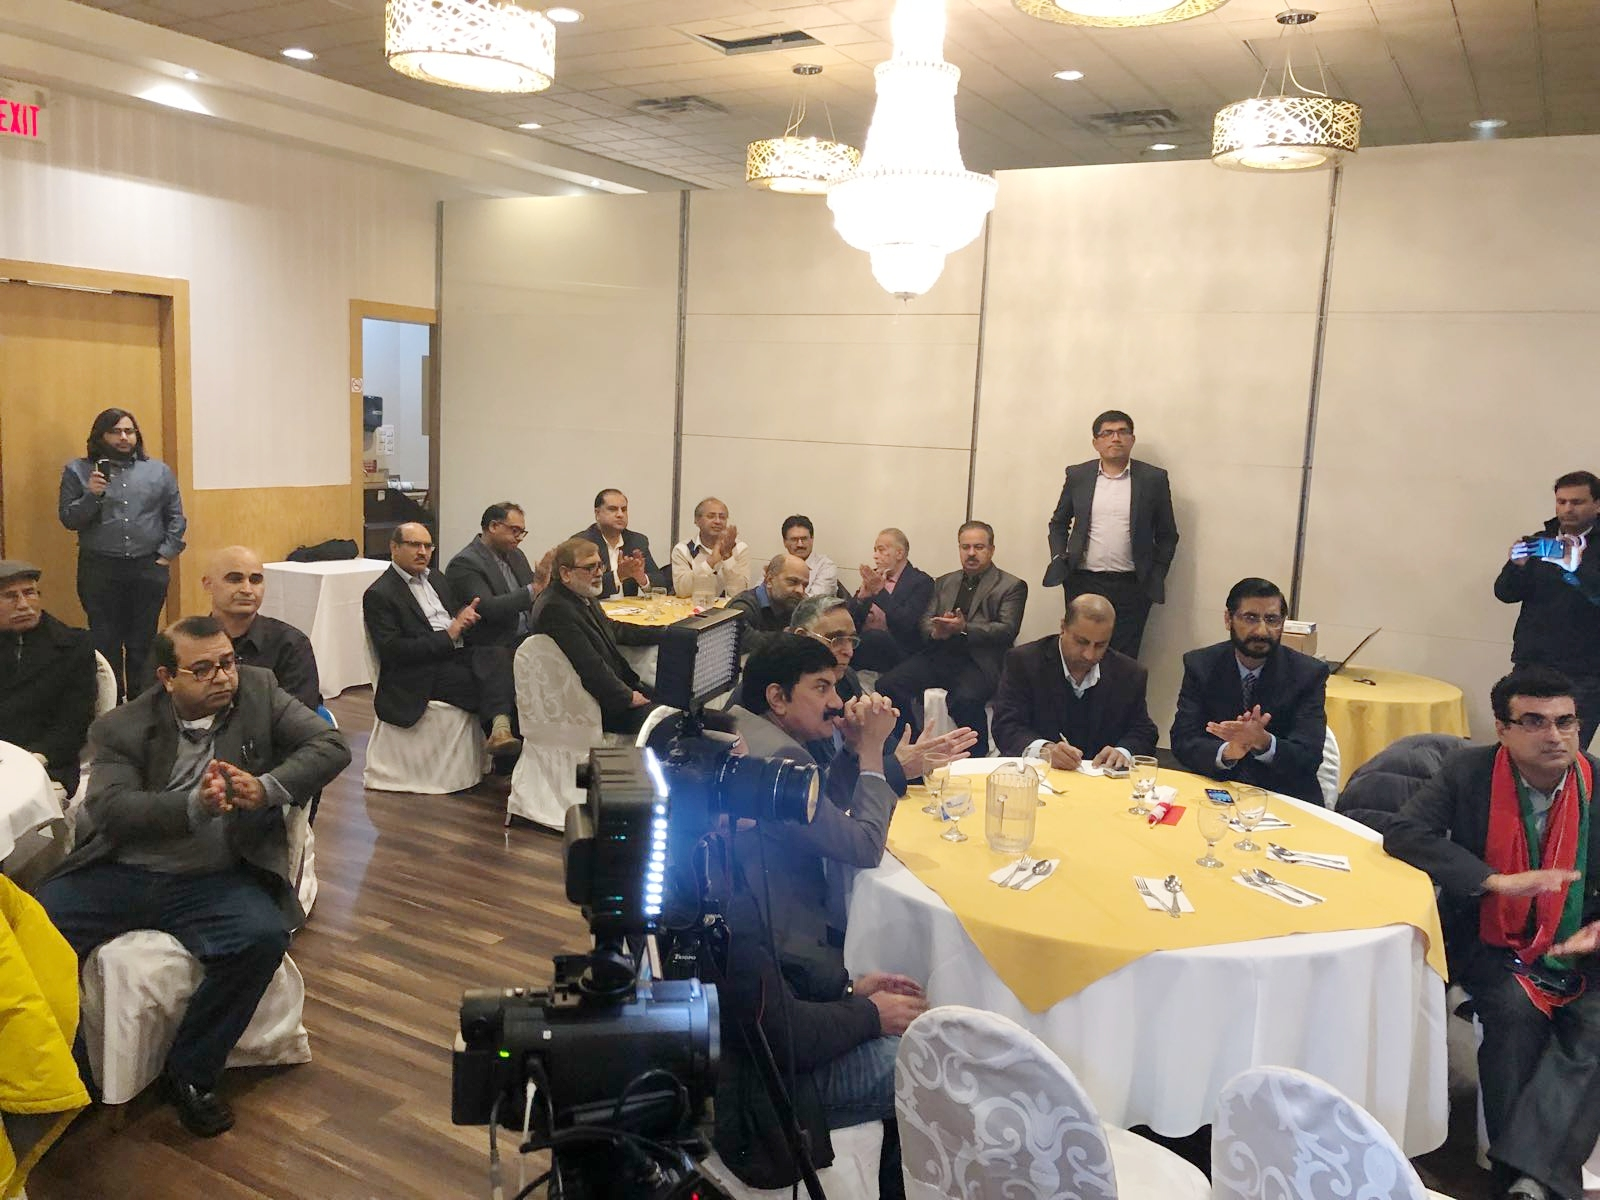 PTI Canada Meet the Press Event